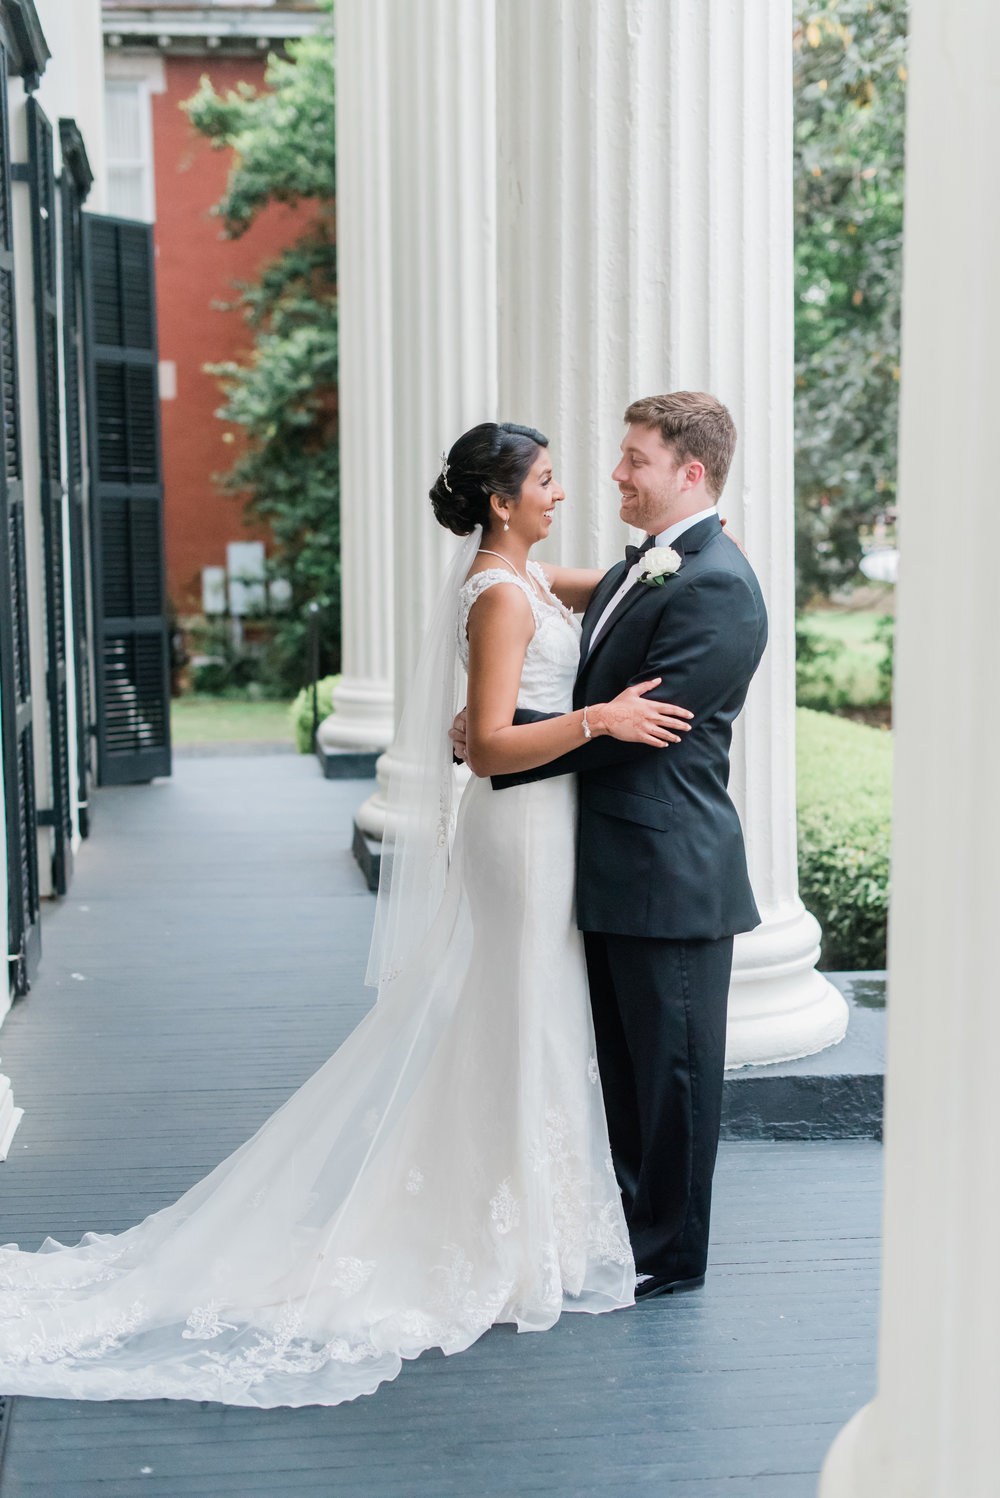 Justin_Priya_Fernicola_Wedding_Columbus_Georgia_Fallen_Photography-1281.JPG